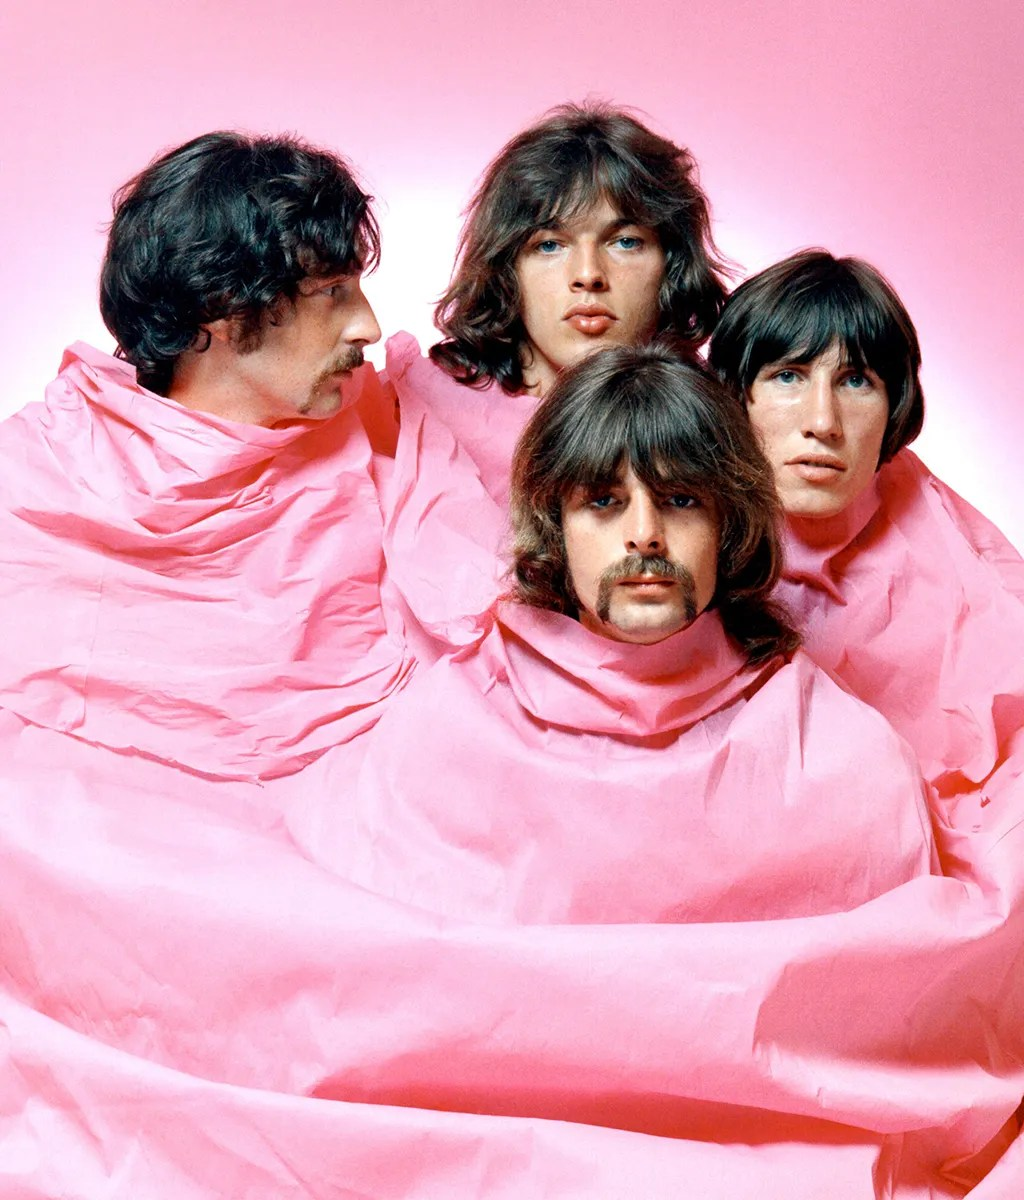 Bad Modern Rock Bands All 165 Pink Floyd Songs Ranked From Worst To Best